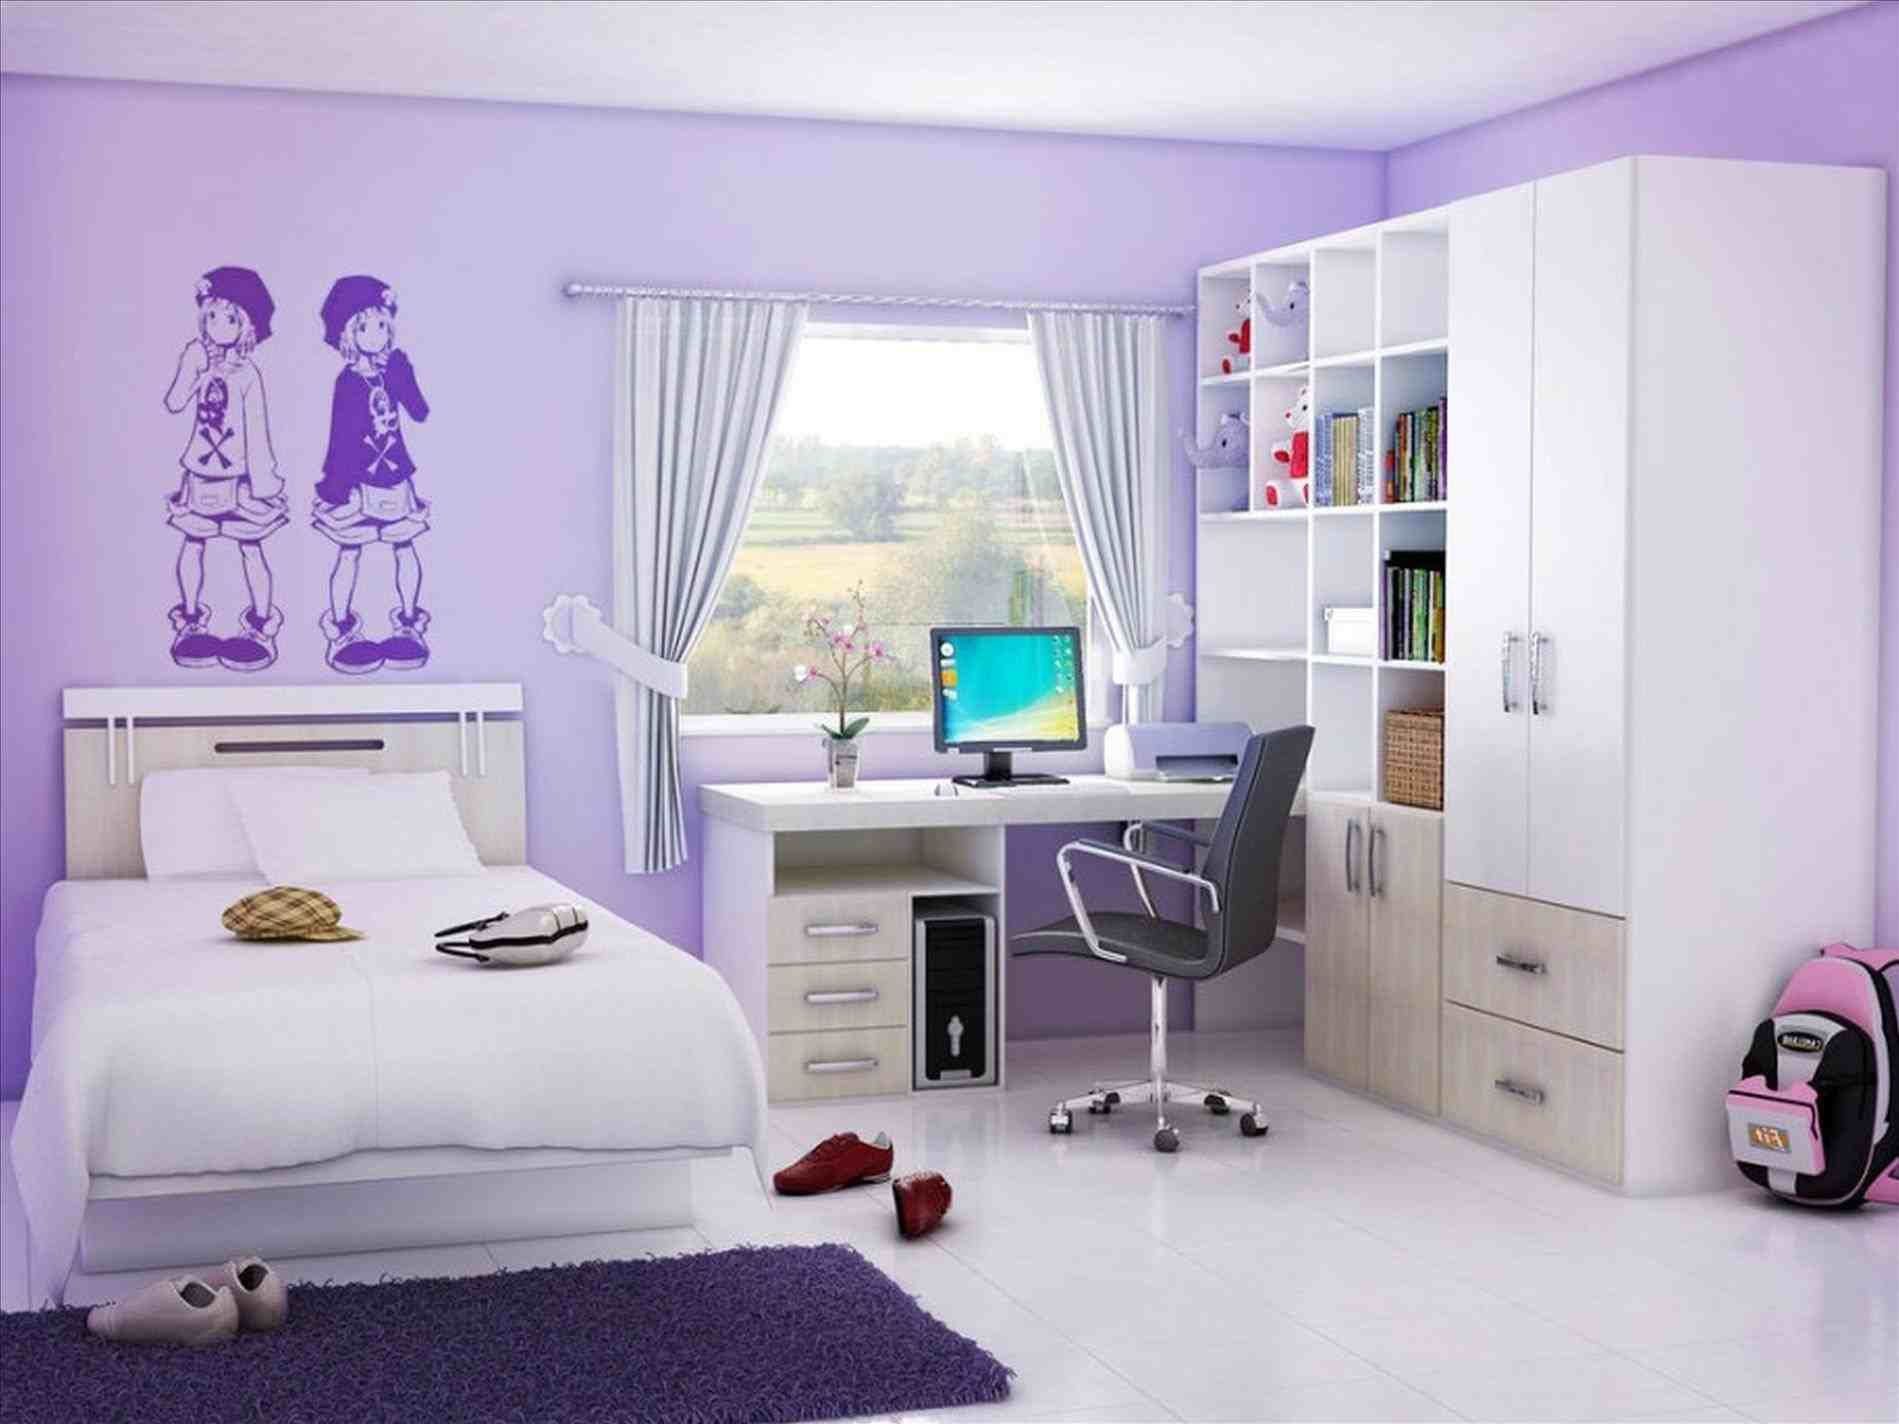 New Post Interior Design Bedroom For Teenage Girls Purple Visit Bobayule  Trending Decors